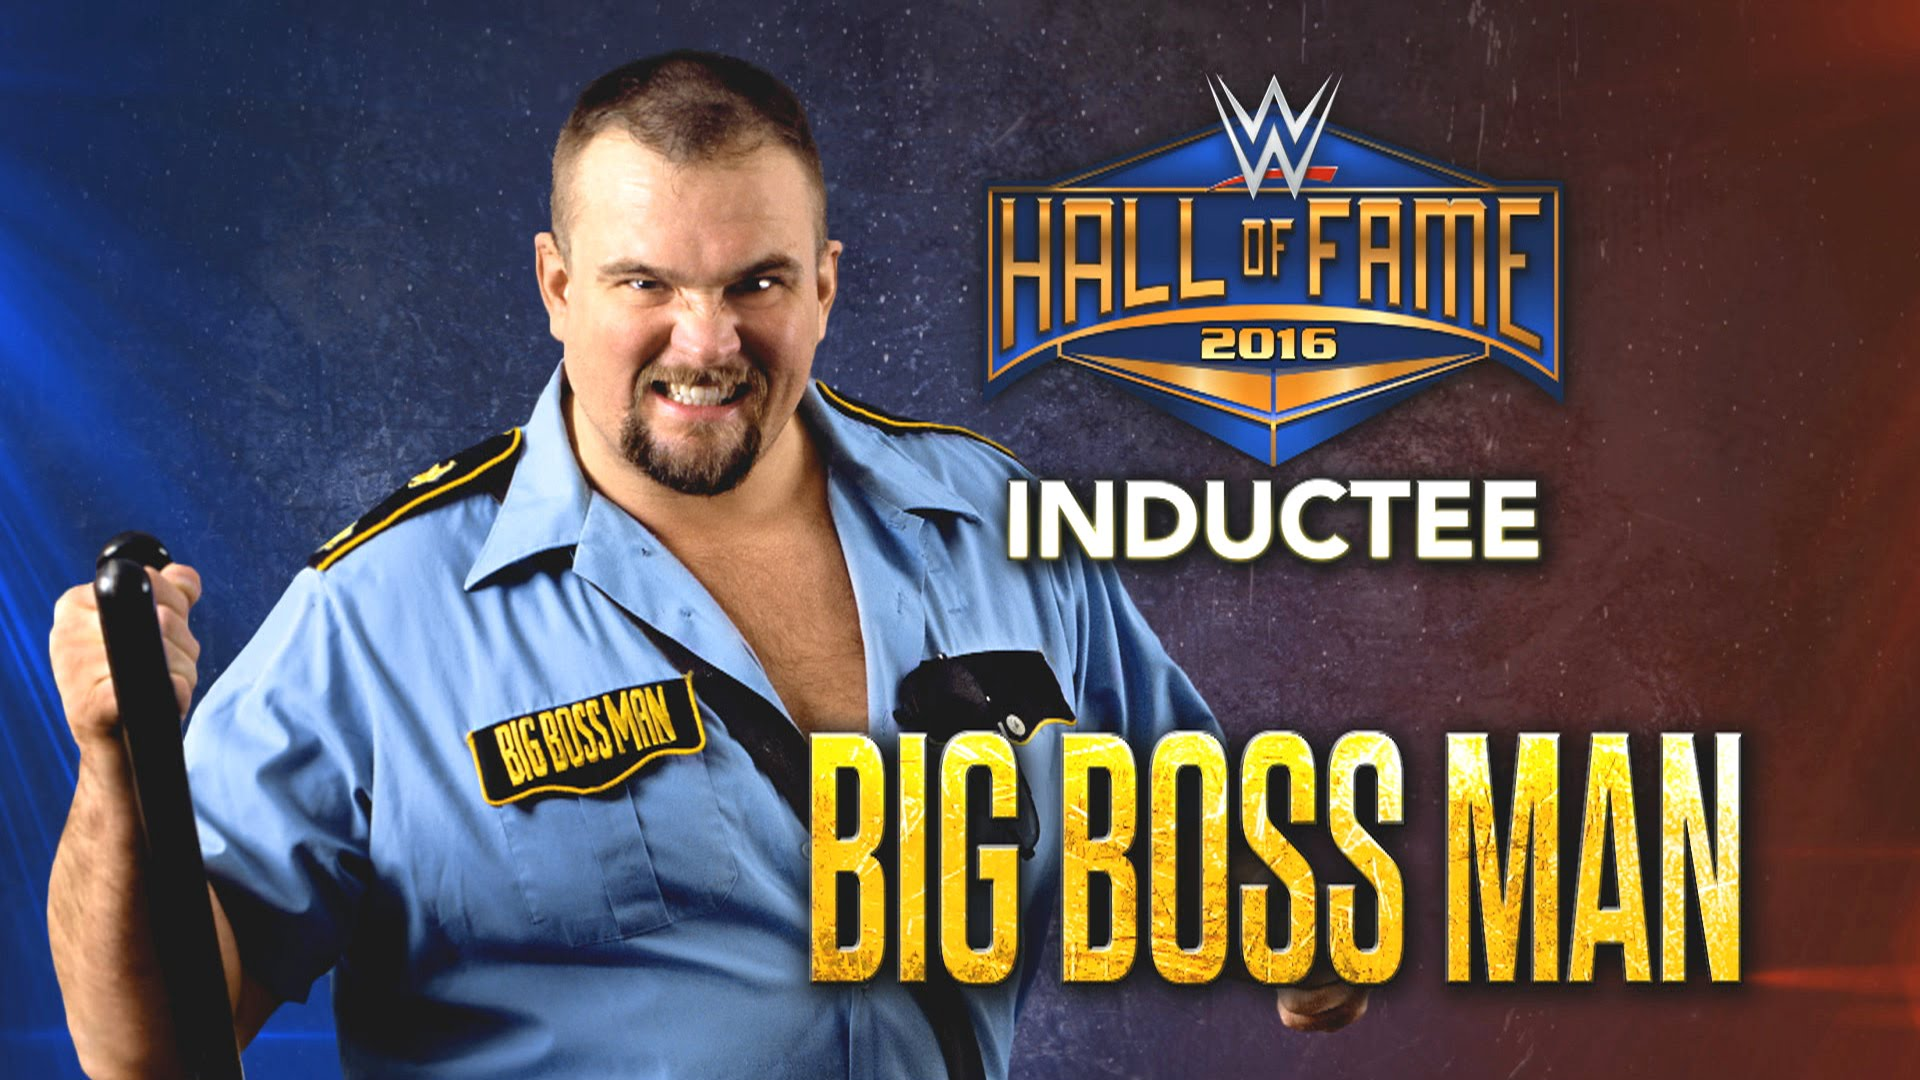 Slick To Induct Big Boss Man Zzs Nxt Debut Video Rvd More